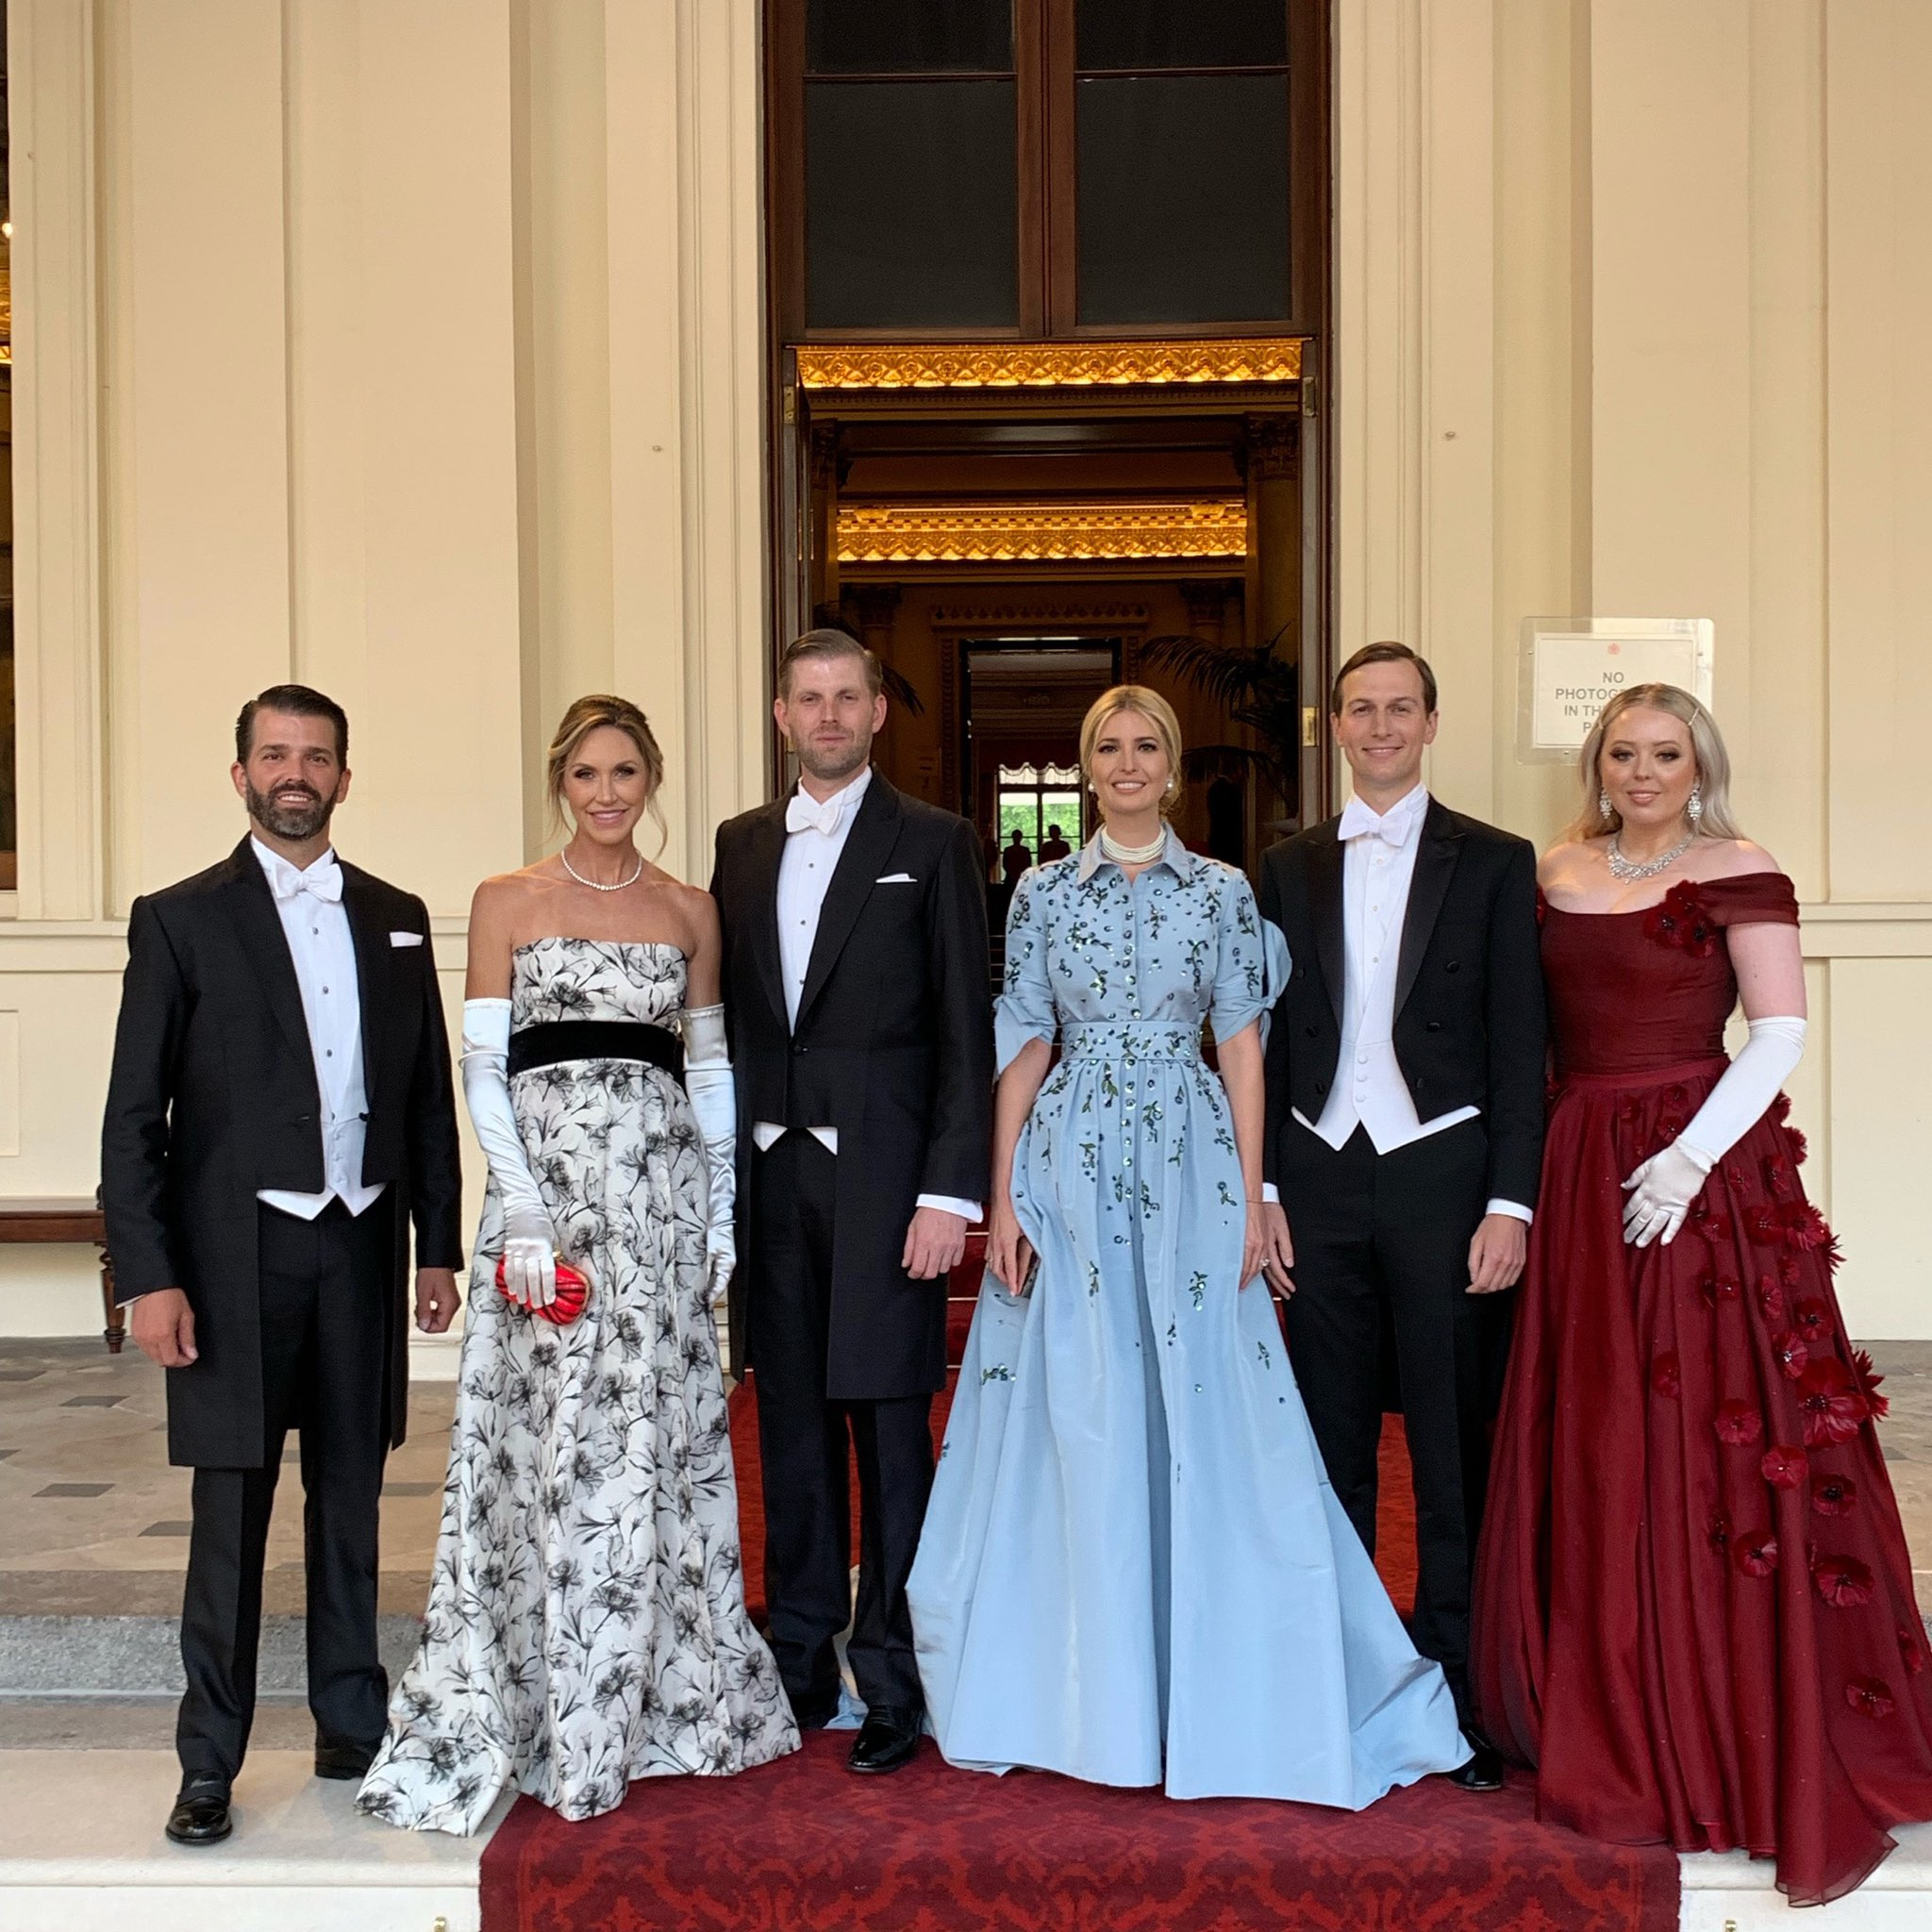 Tiffany Trump (right) with some attendees at the state's dinner in Buckingham Palace (Source: @IvankaTrump Twitter)